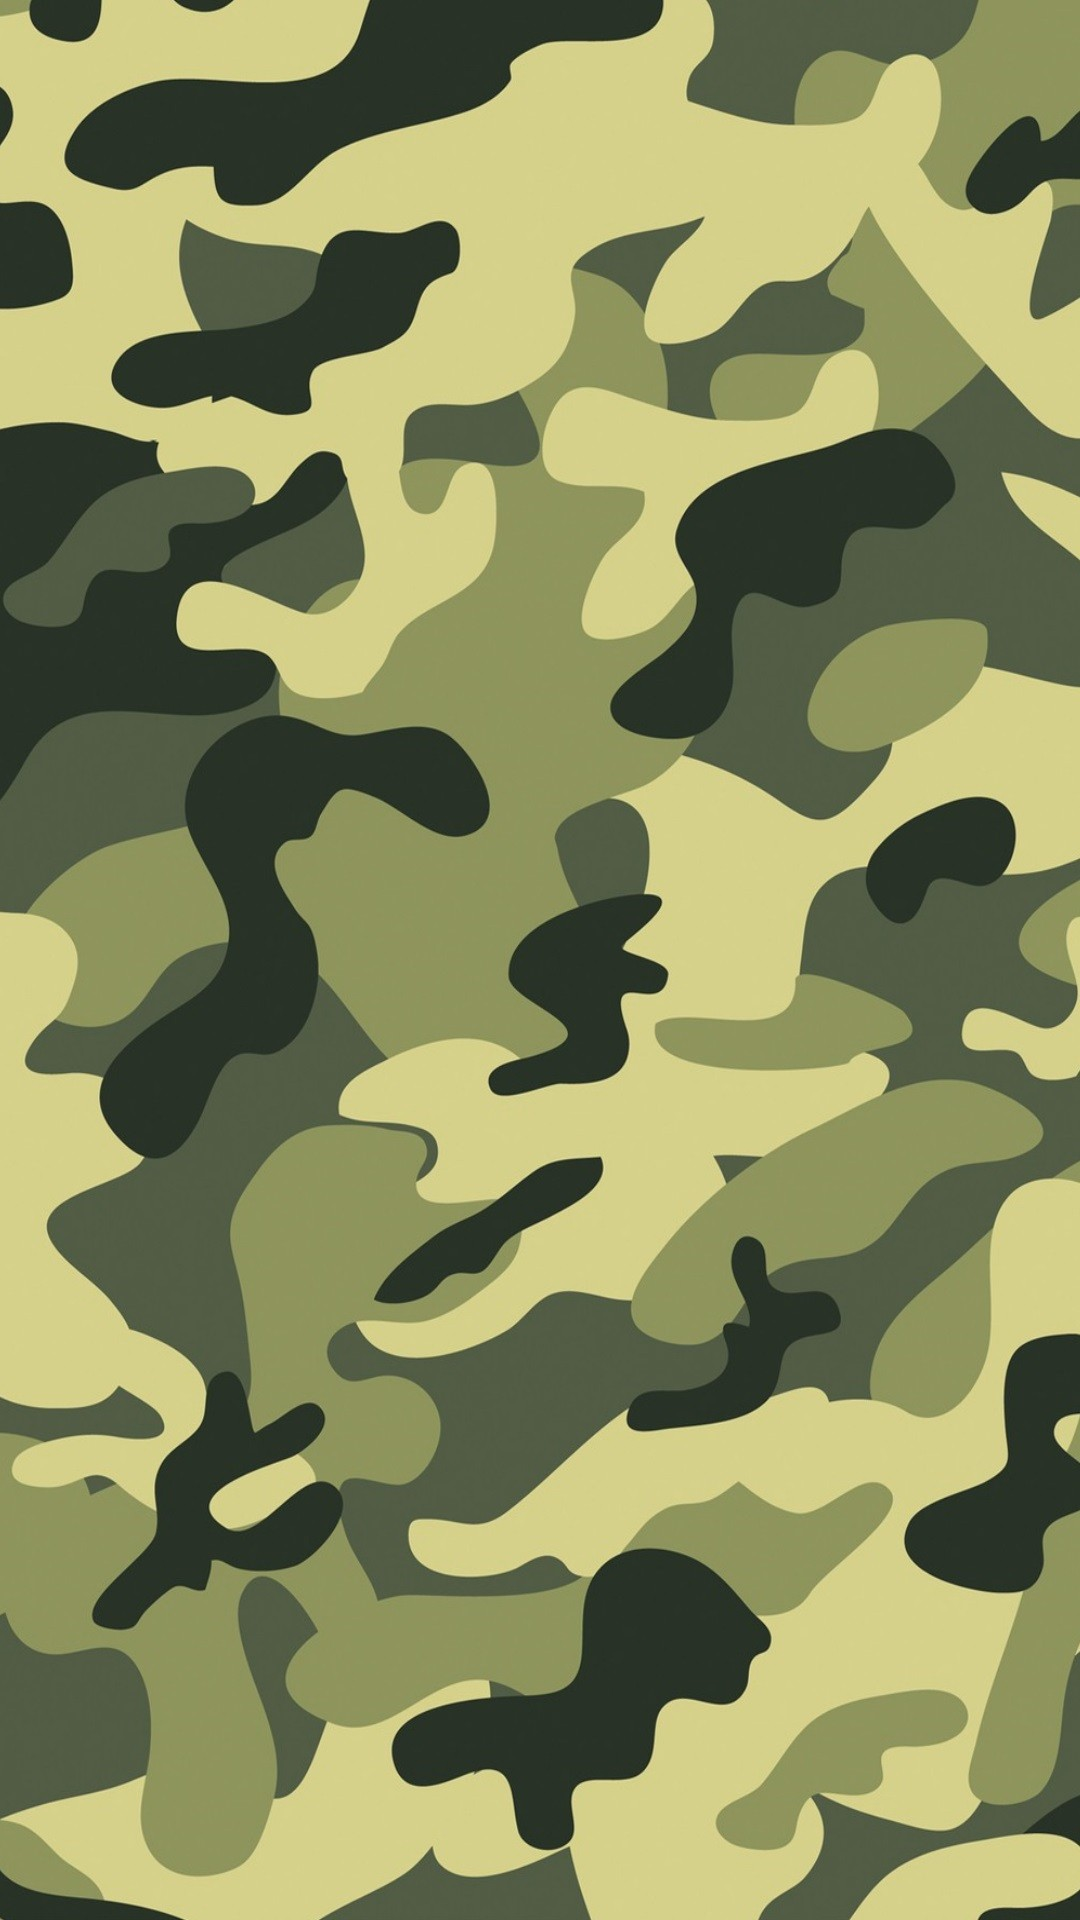 Military Camouflage Wallpaper Hd Camouflage Wallpaper 183 ① Download Free Full Hd Wallpapers